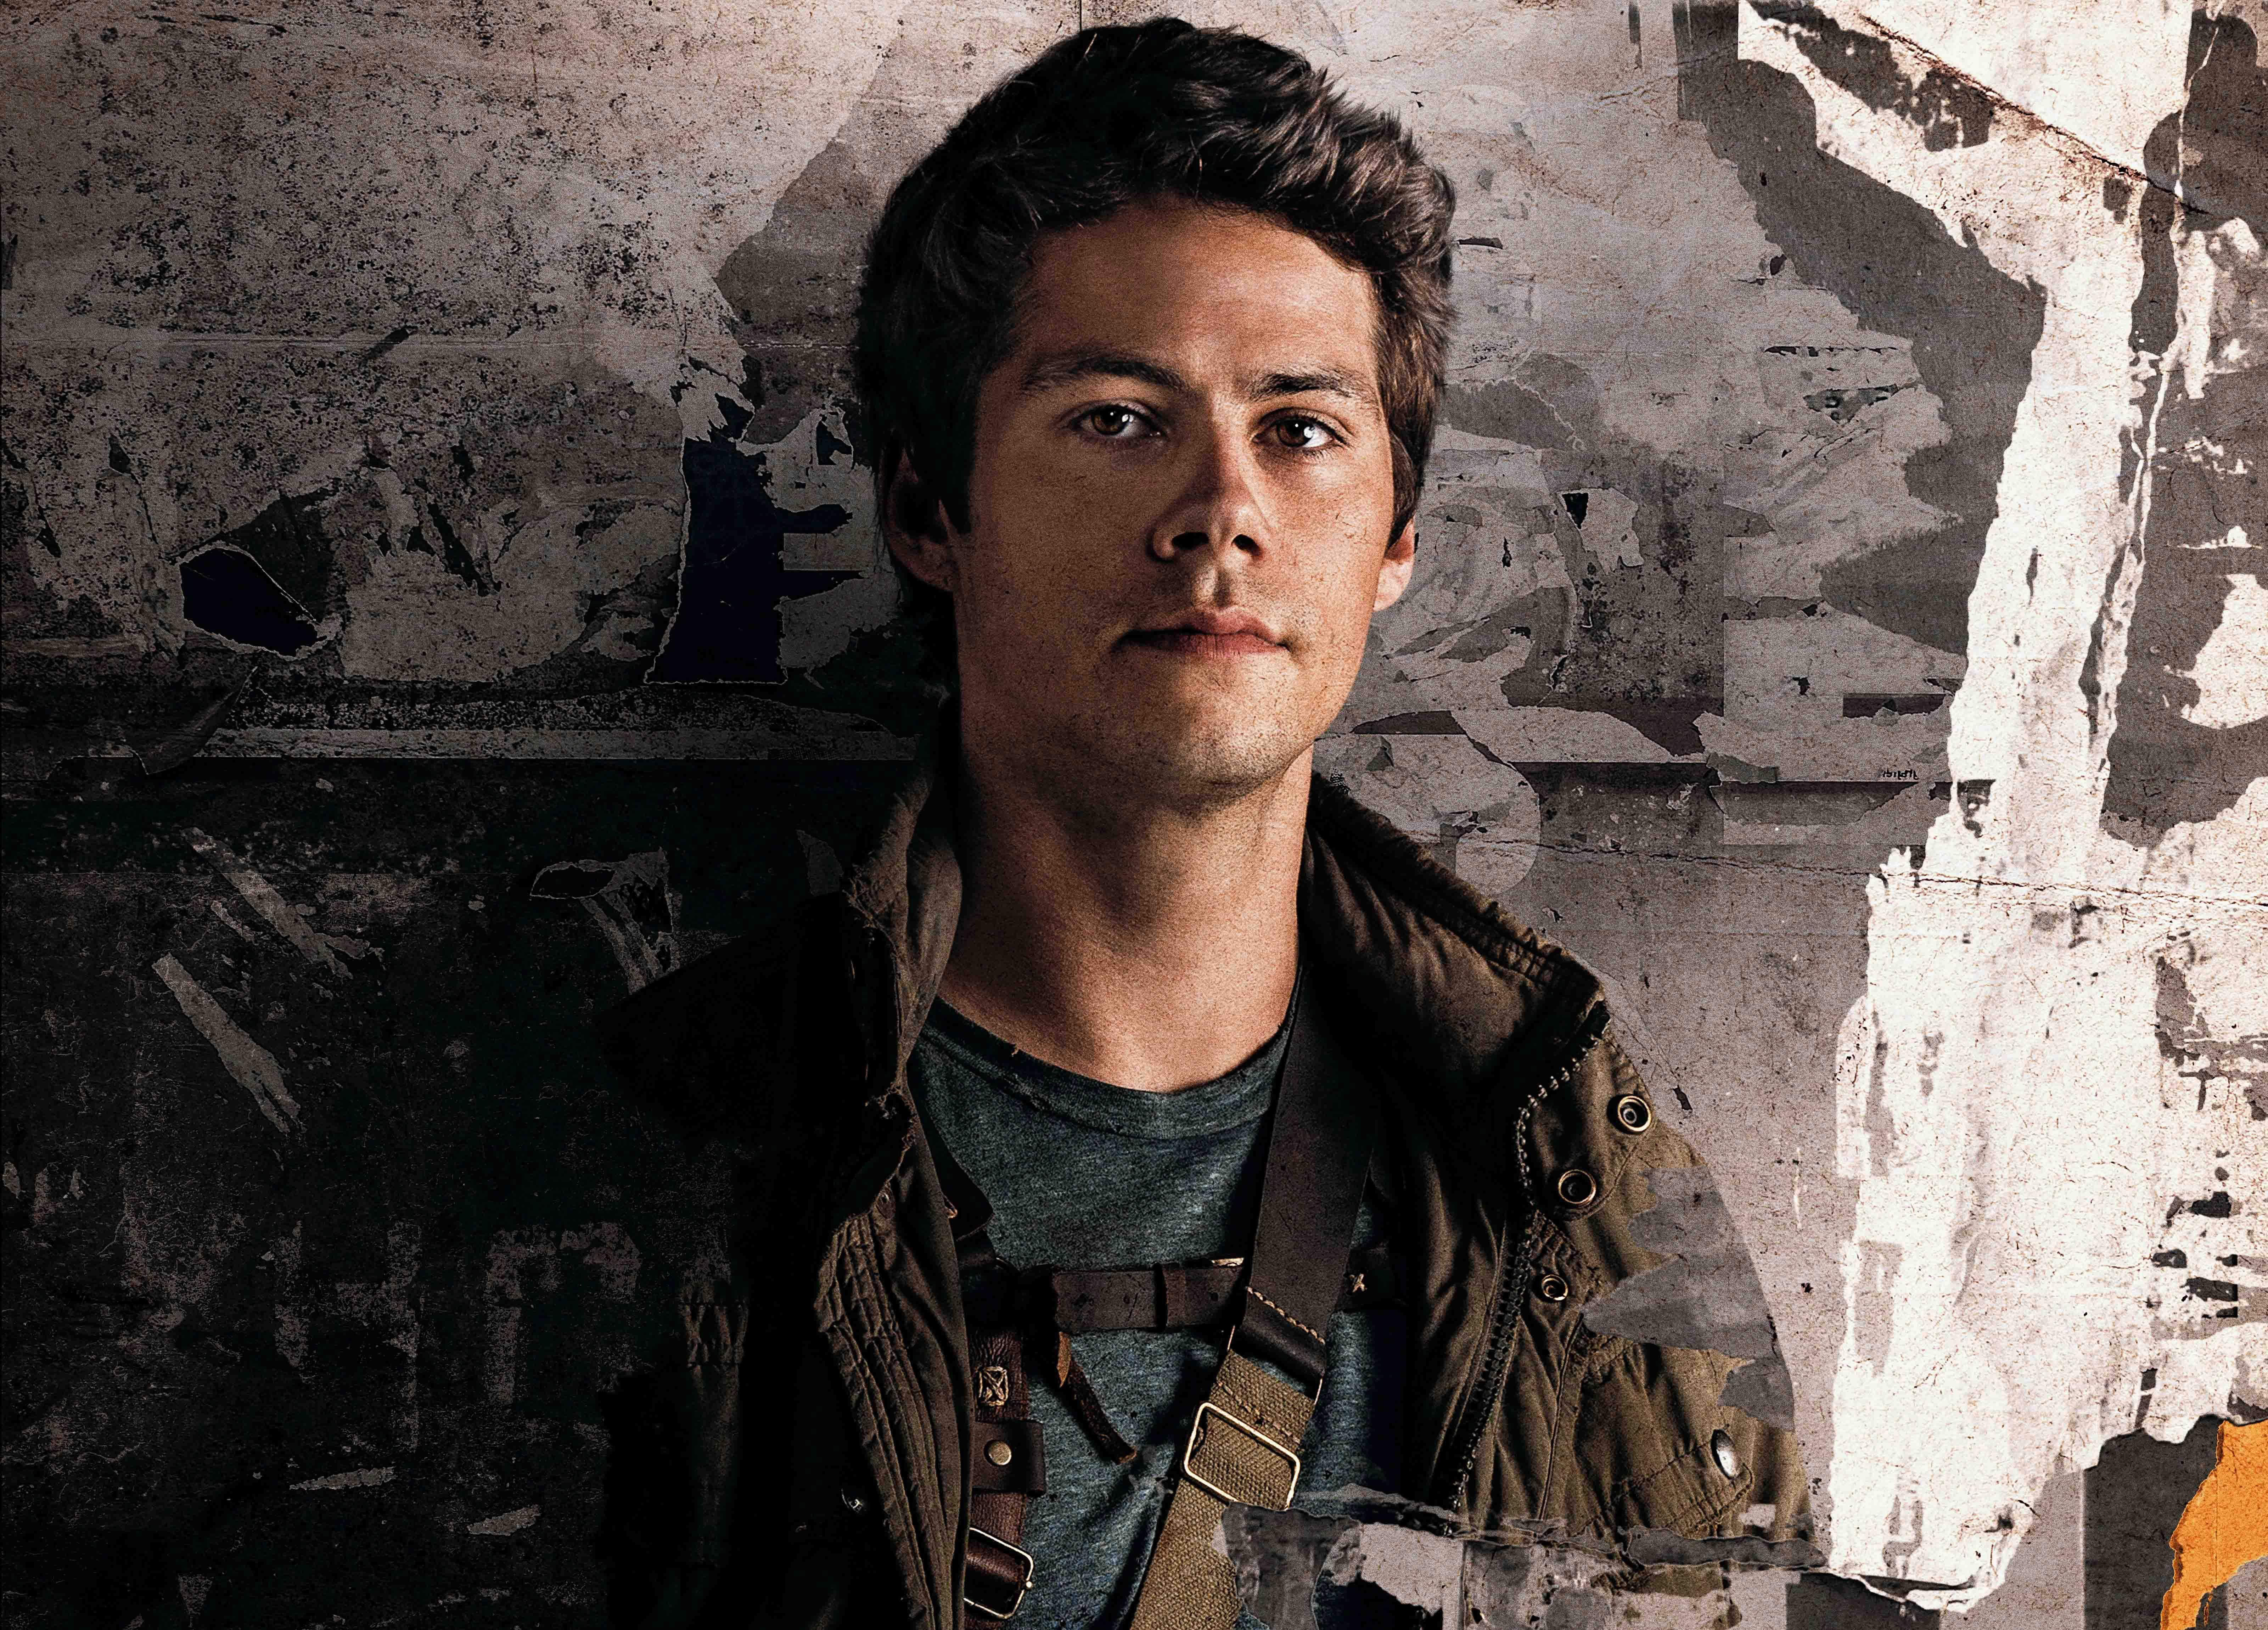 1280x2120 Dylan O Brien In Maze Runner The Death Cure 2018 Iphone 6 Plus Wallpaper Hd Movies 4k Wallpapers Images Photos And Background